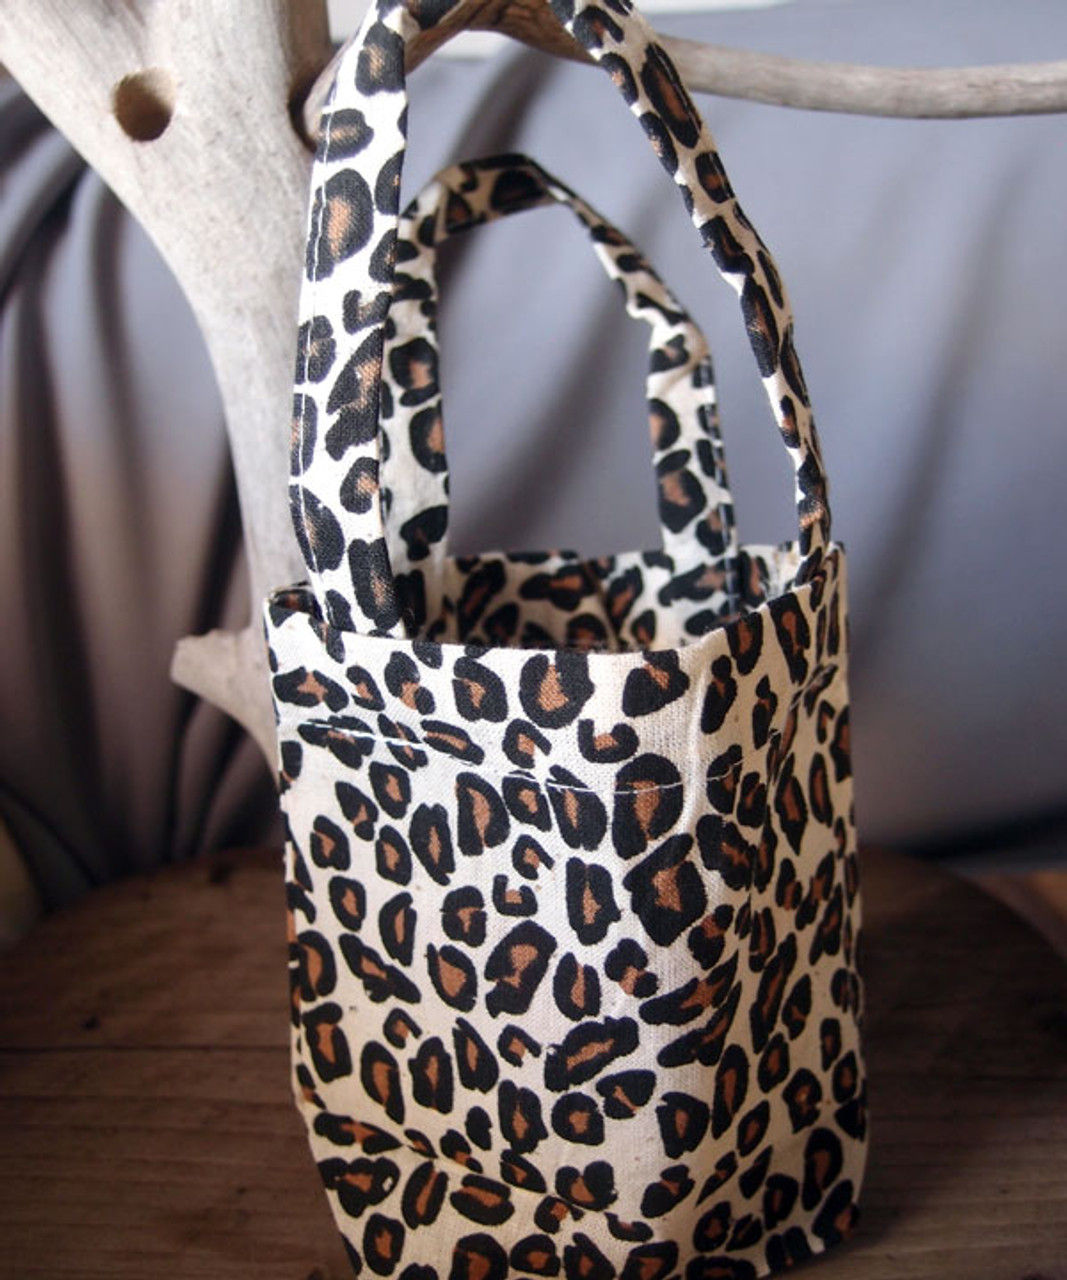 Wholesale Cotton Leopard Print Bags, Wholesale Cotton Tote Bags | Packaging Decor